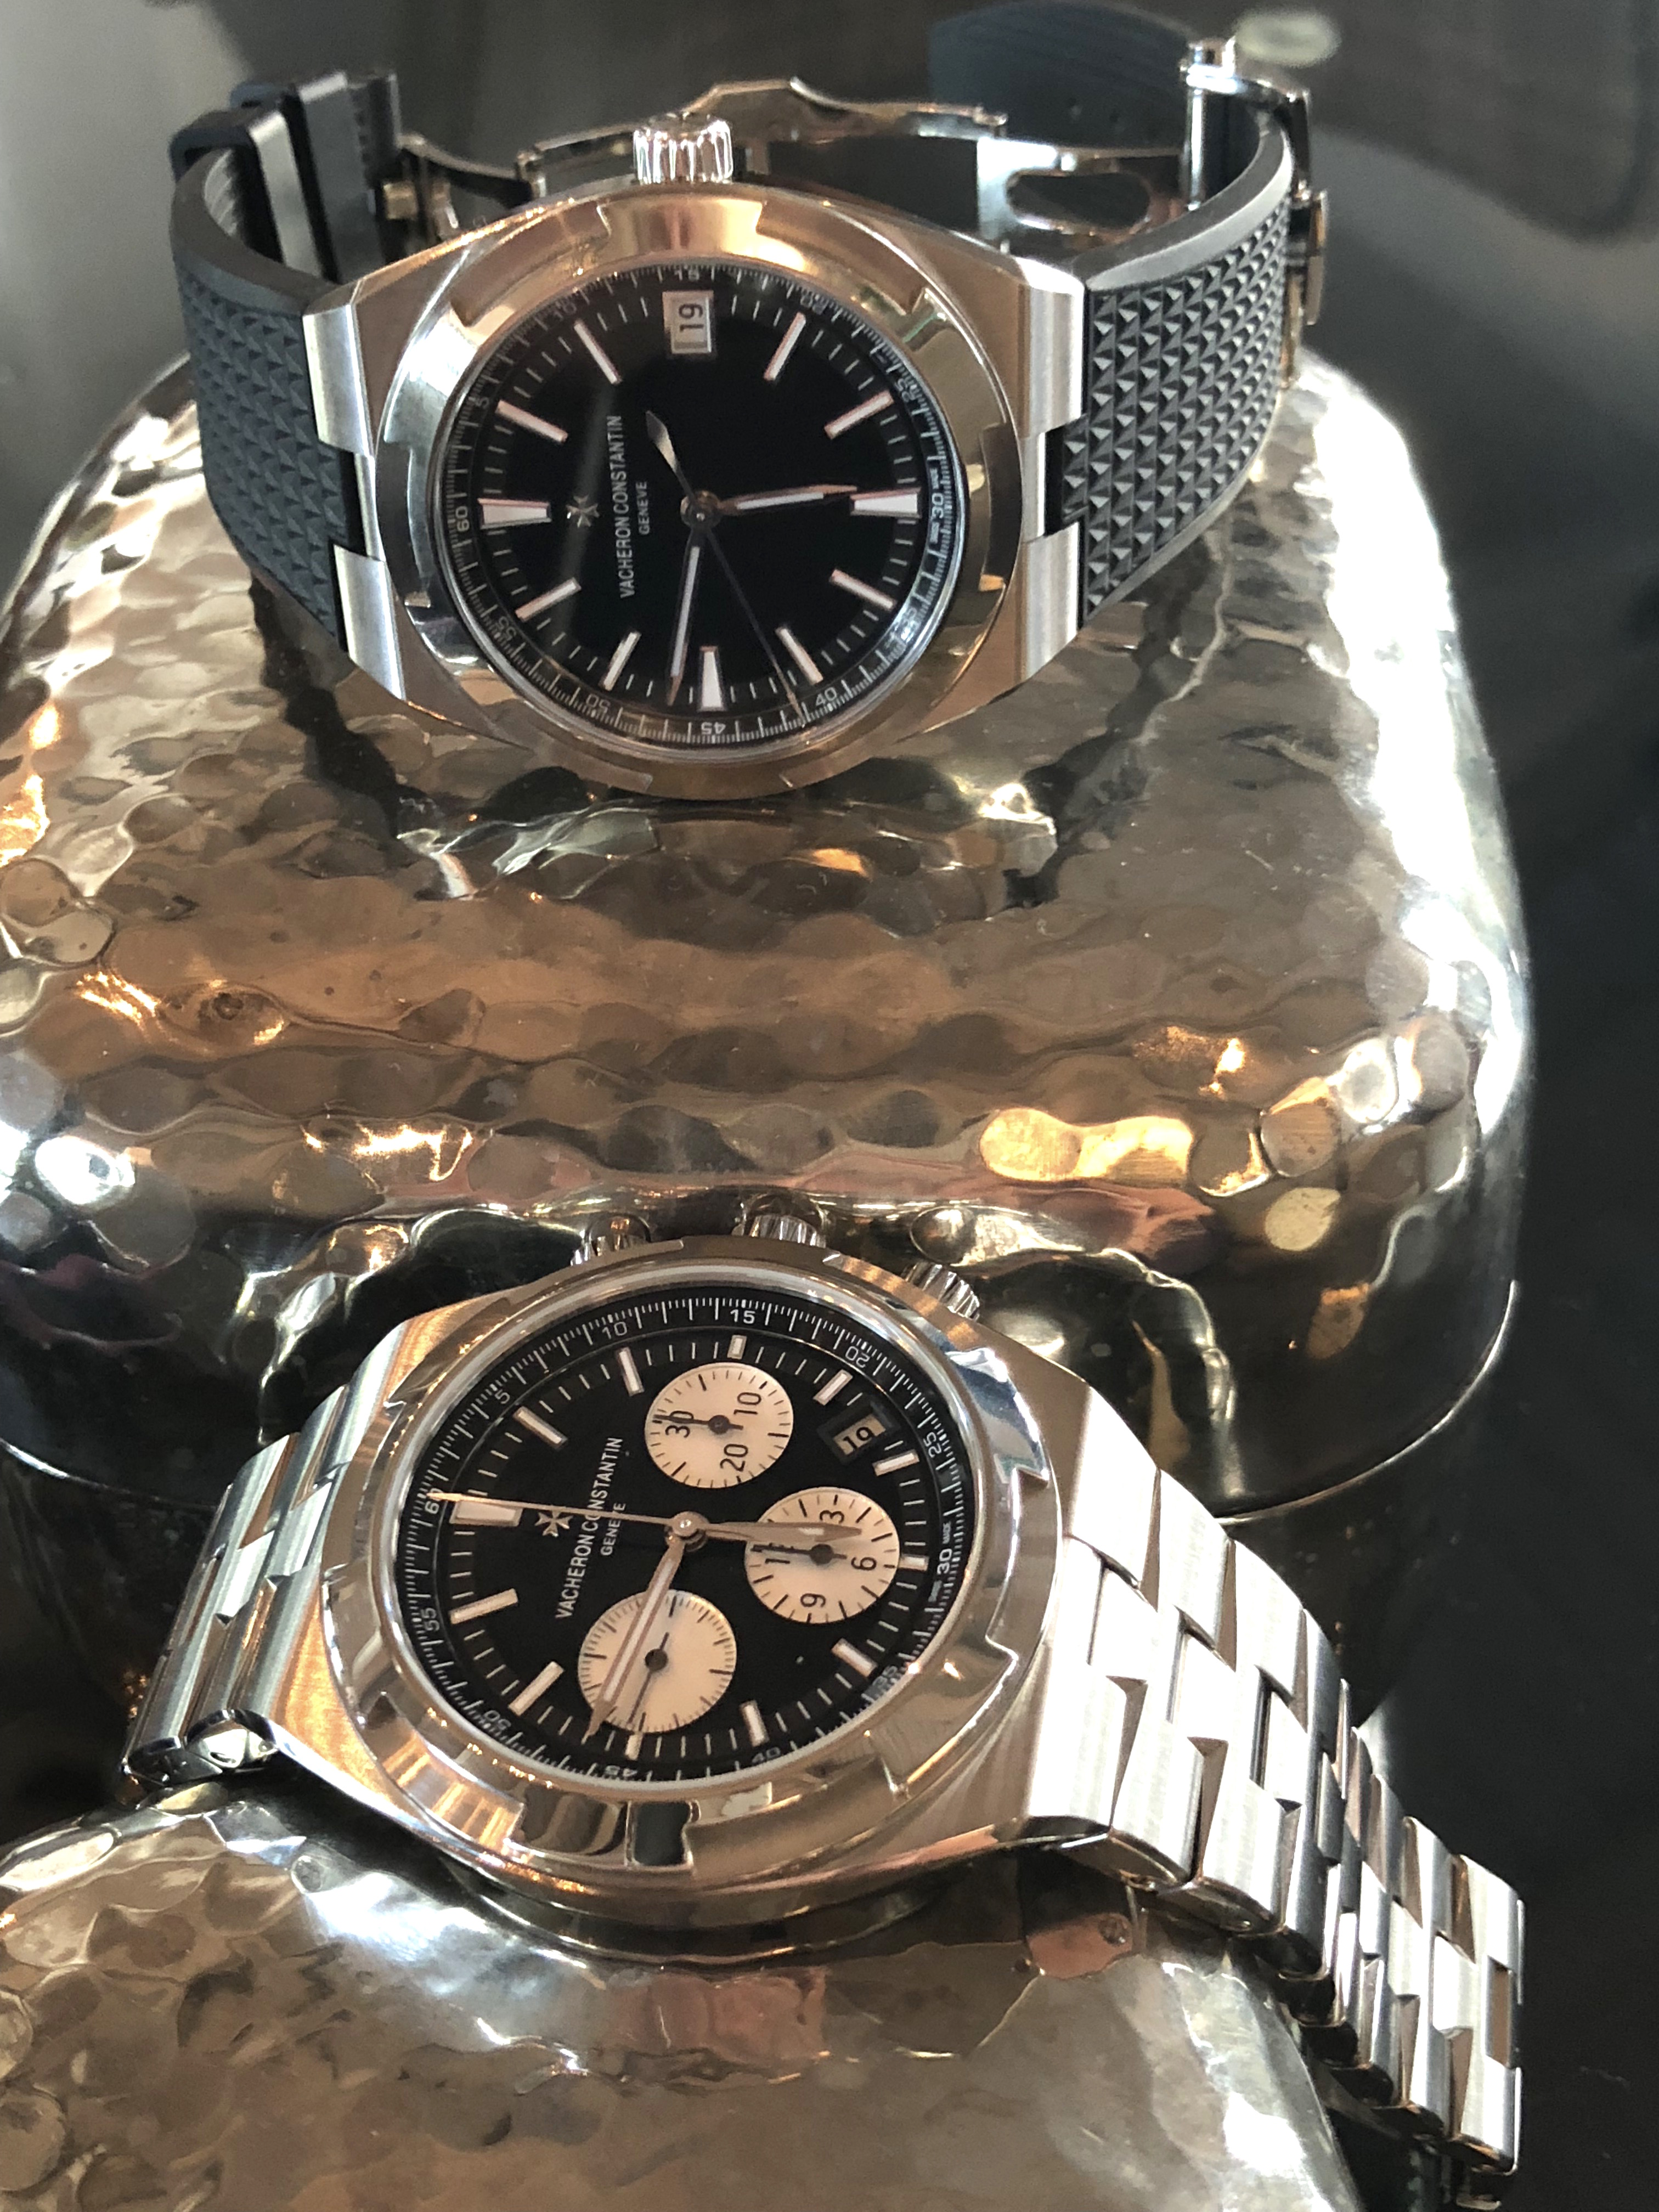 Let's not forget the great Vacheron Constantin Overseas black dial watches